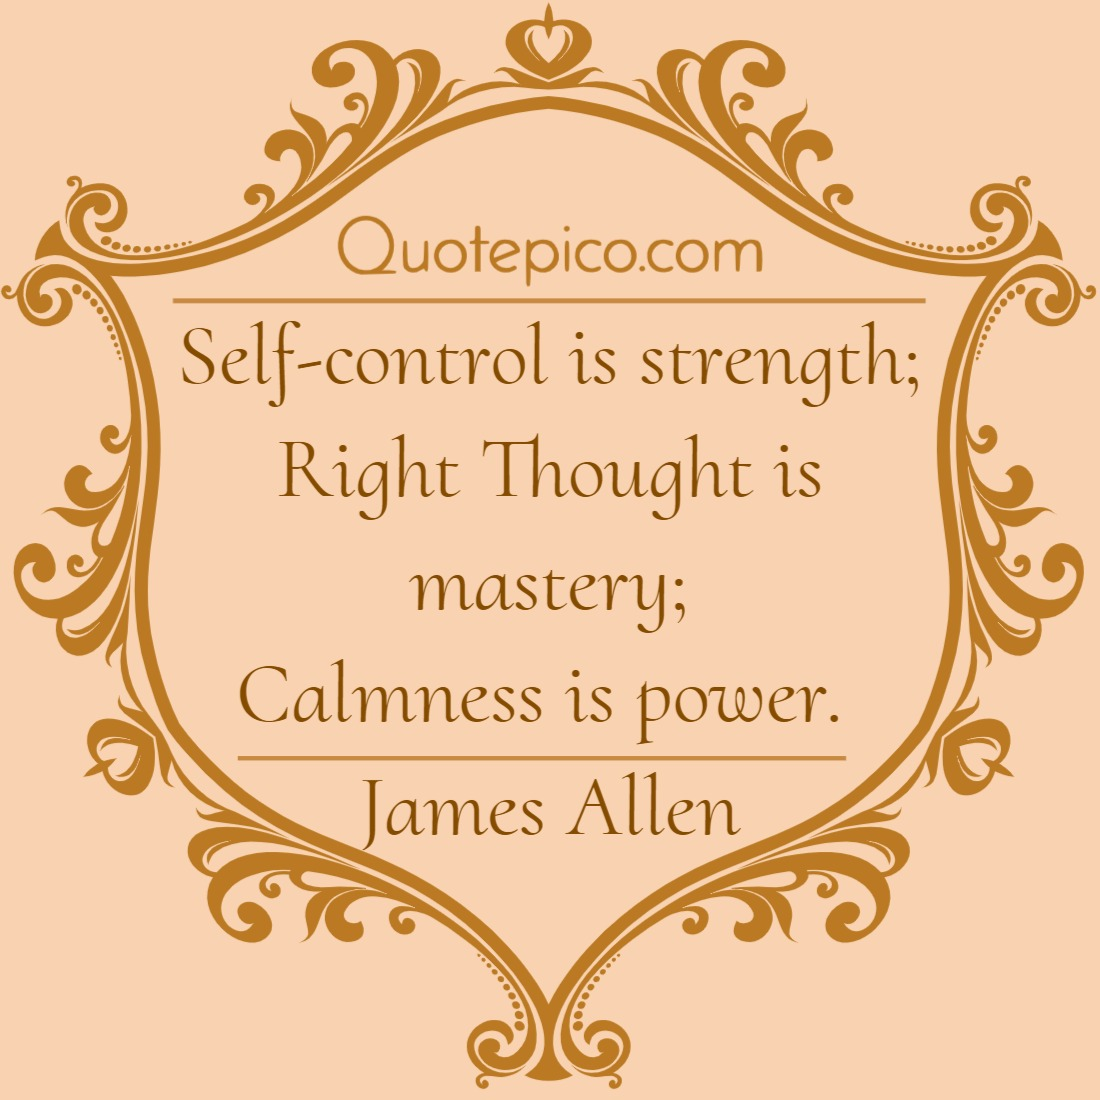 [Image] Calmness is Power – James Allen